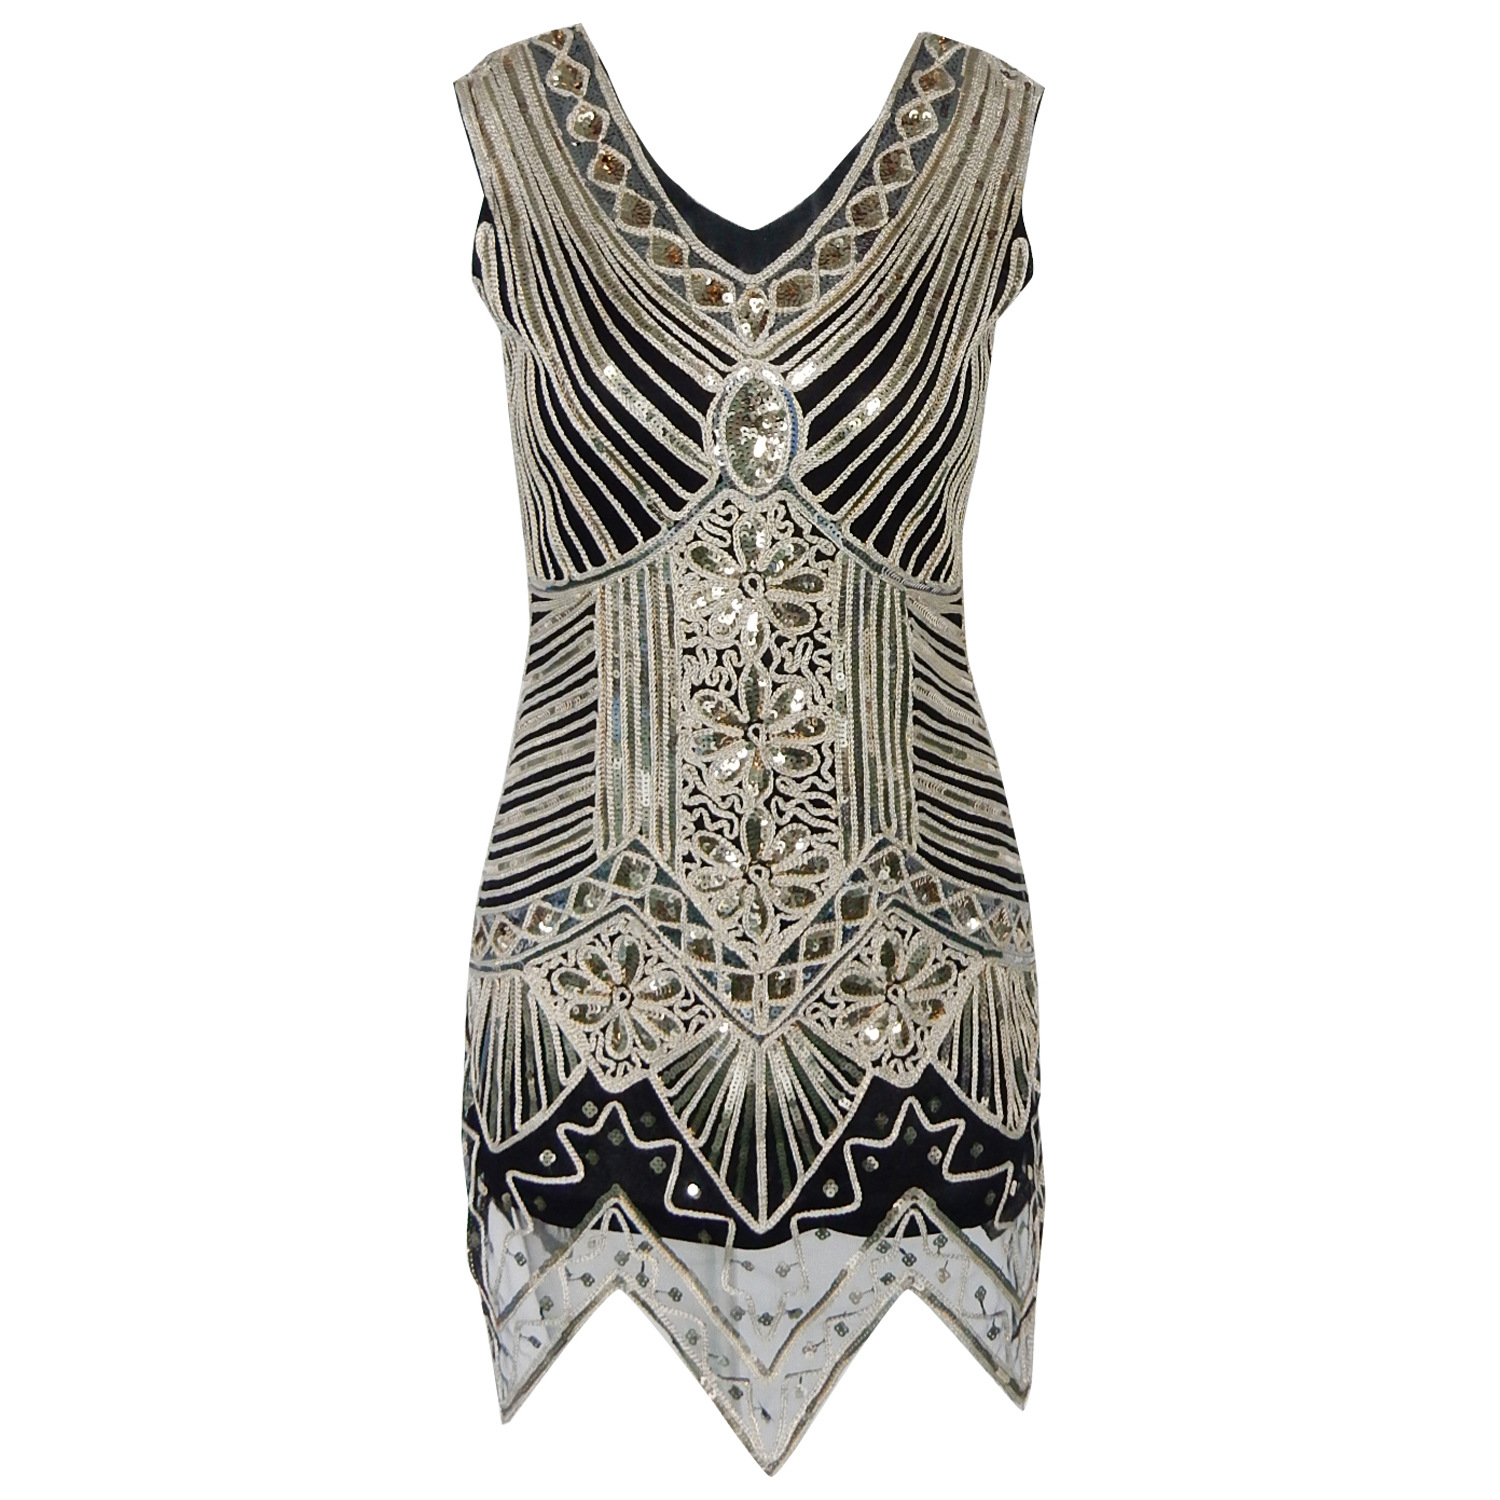 f3c0f0ffe2 2016 high grade sequins hand knitting dress Vintage sequin dress party  retro nightclub Vestido-in Dresses from Women s Clothing on Aliexpress.com